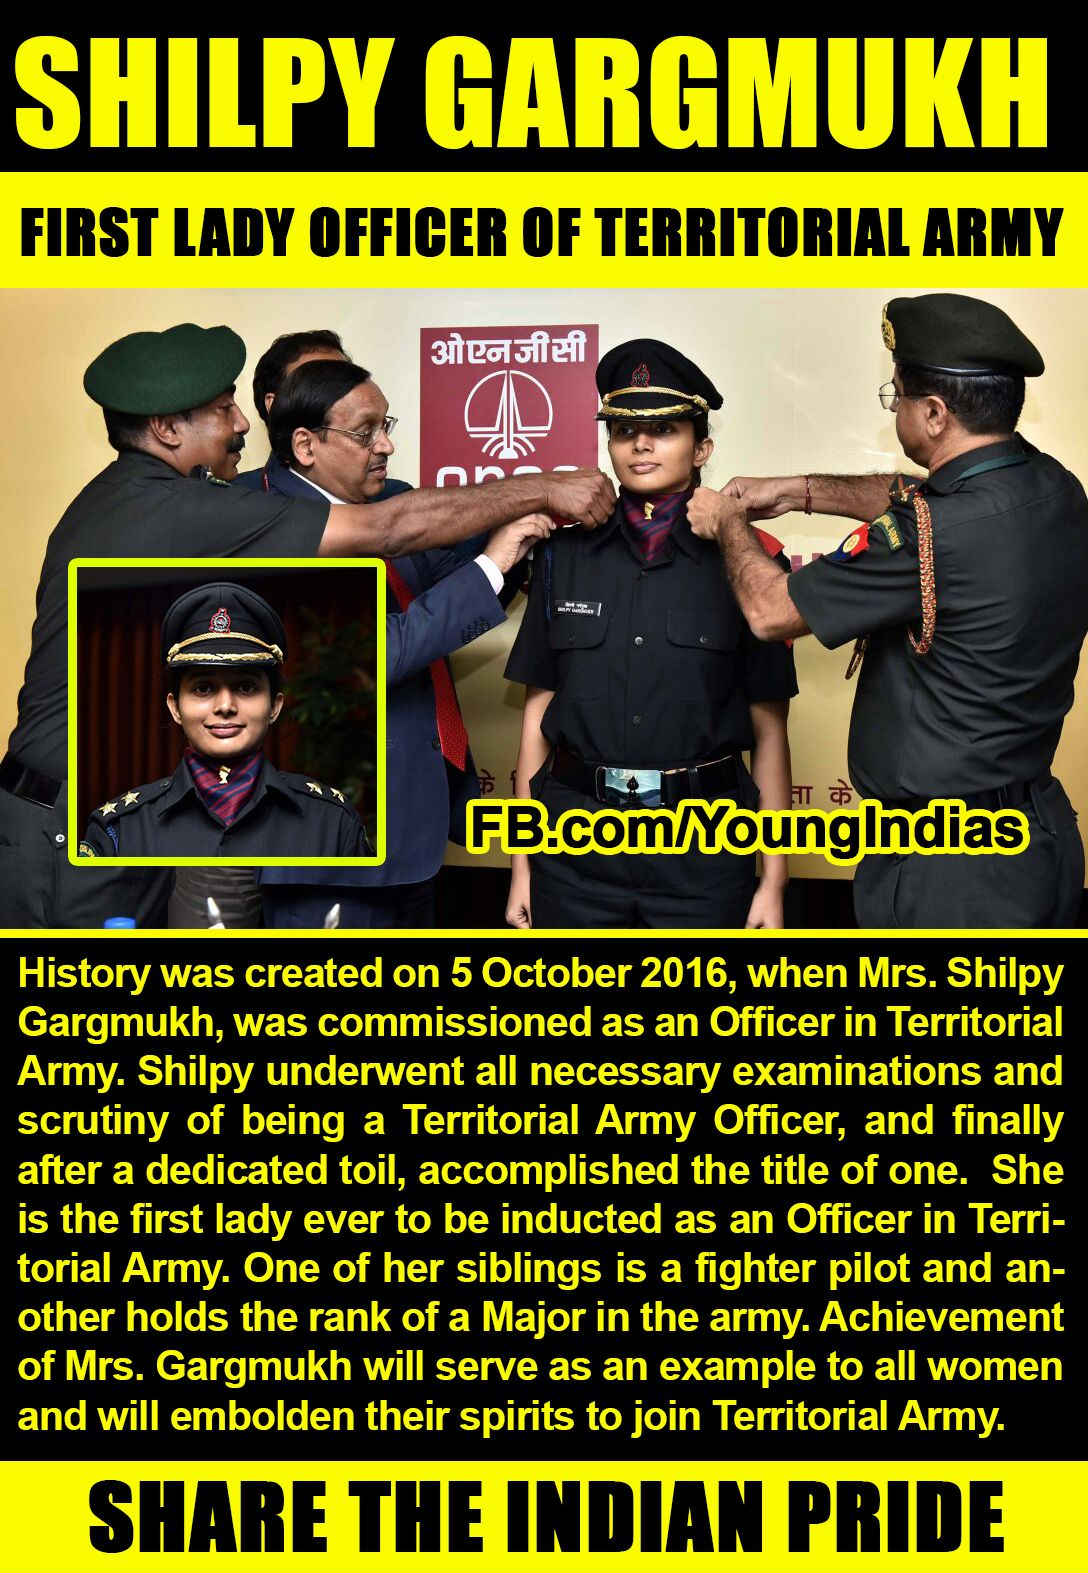 Young India Facebook Page for Inspiring the youth - meet Shilpy Gargmukh.  She is the